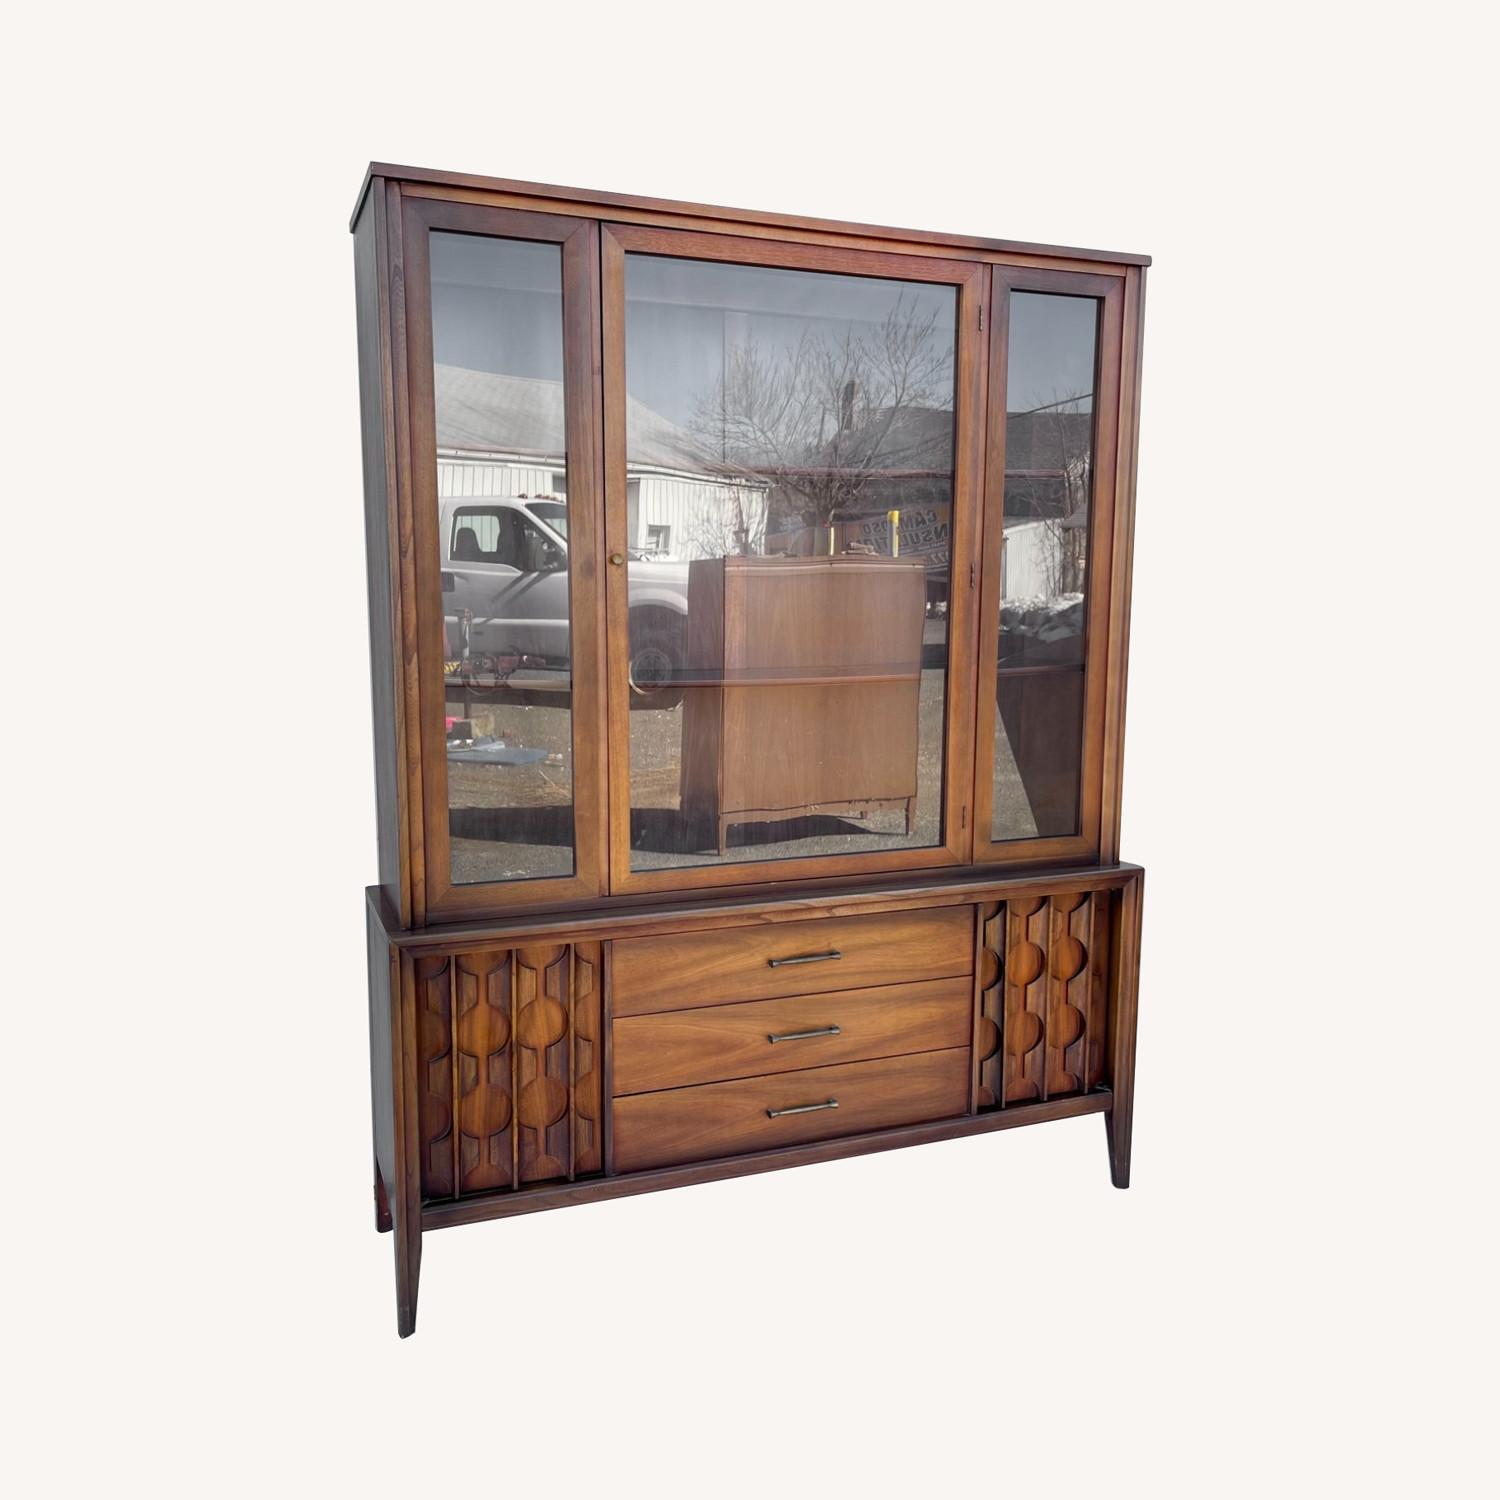 Mid-Century Modern Sideboard With Cabinet - image-0